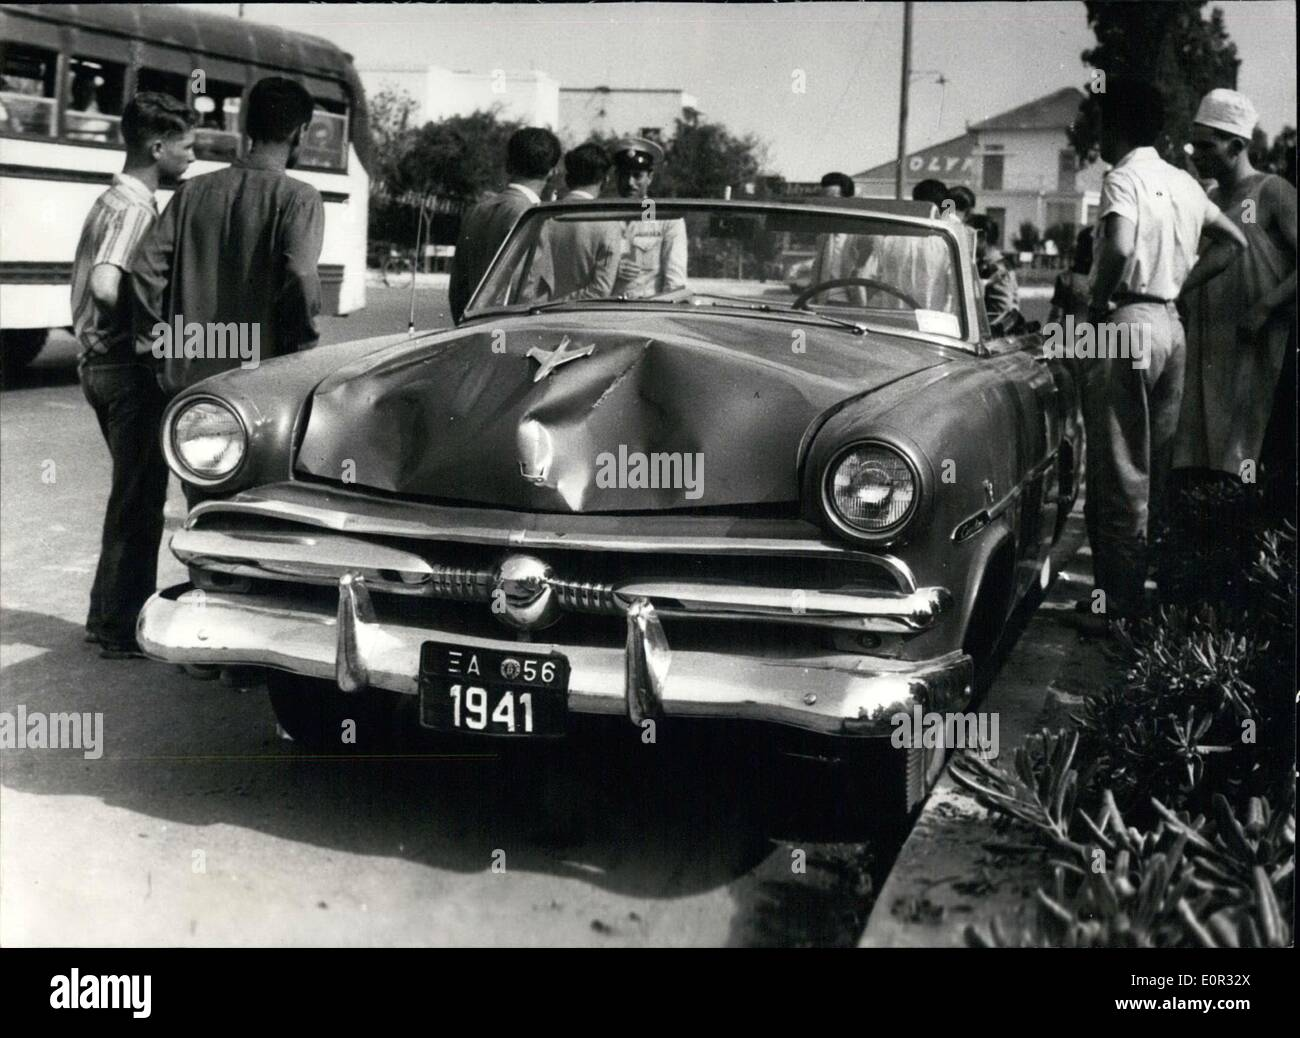 Jan. 01, 1958 - The car of the U.S. Airforce serviceman Sgt. Mouzali on which there can be seen the damages caused when the car - Stock Image